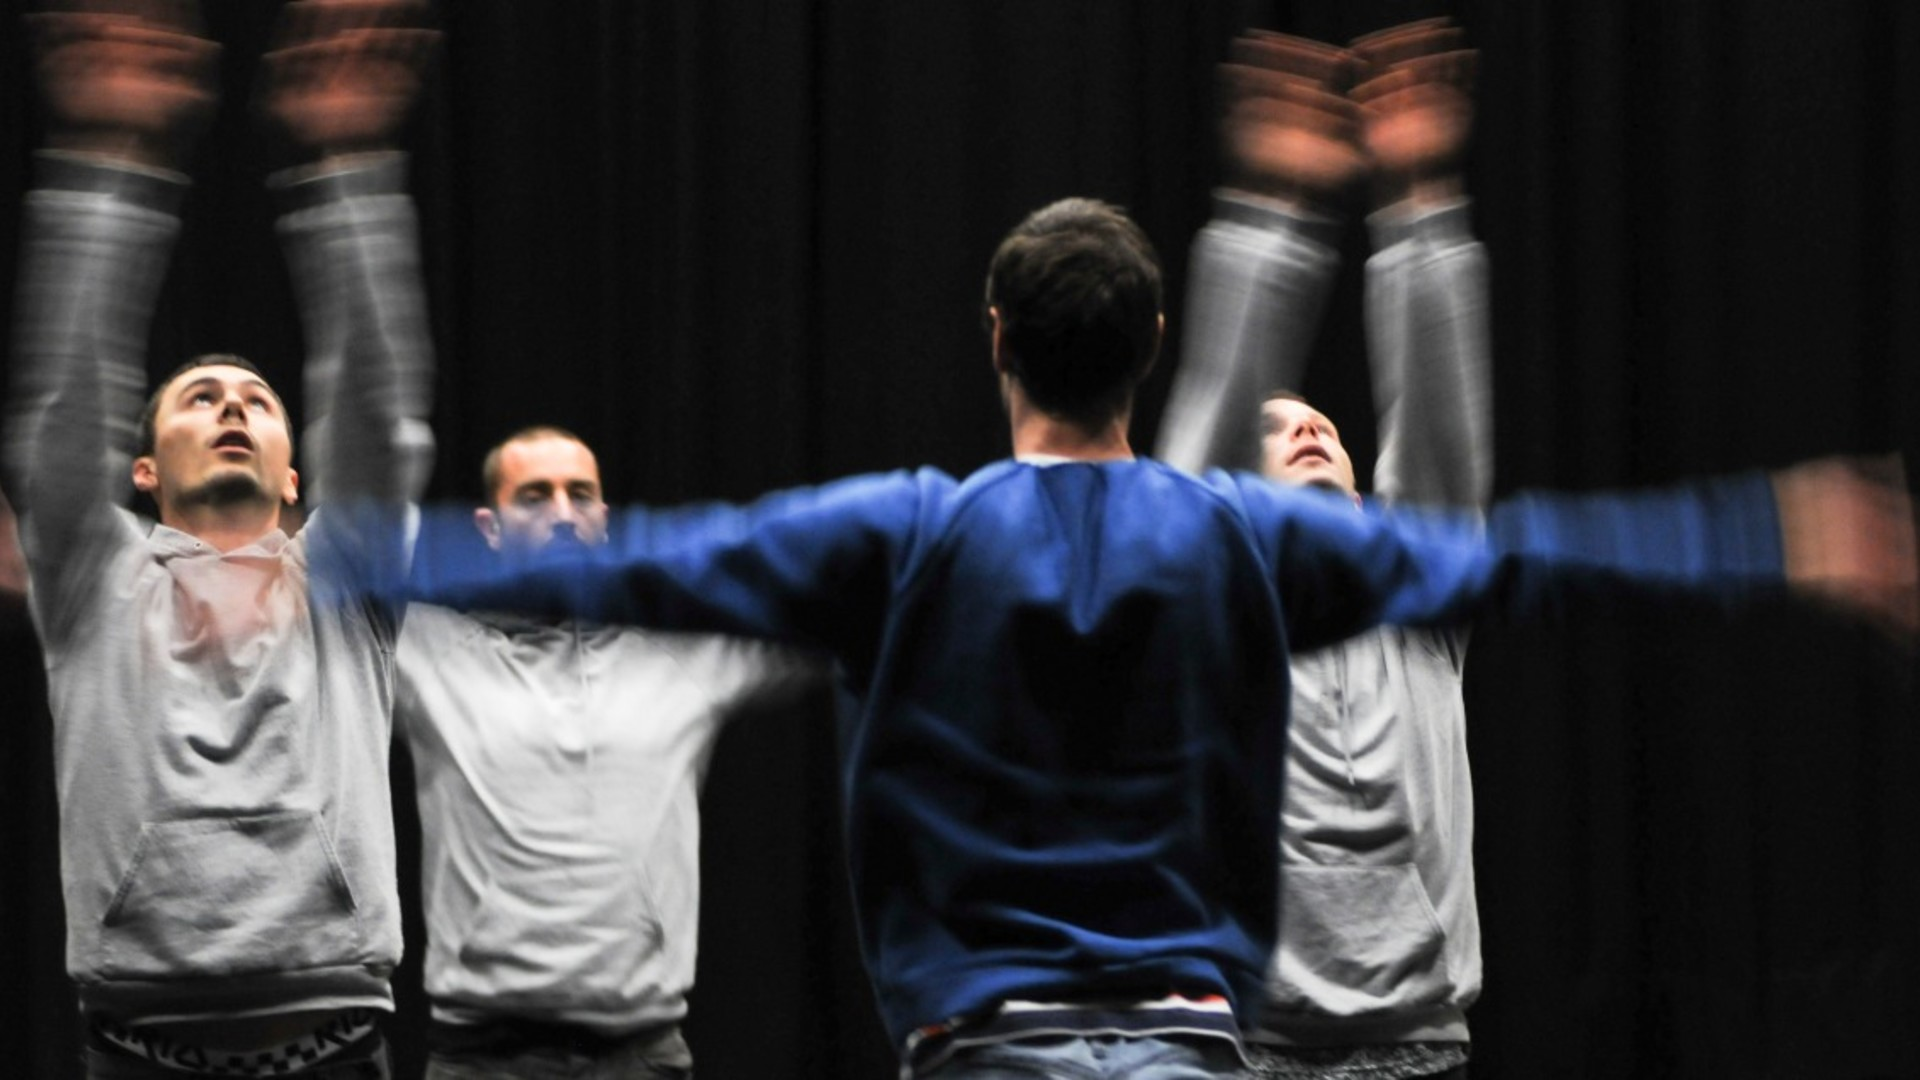 4 dancers, 3 in grey tops facing 1 in a blue top, wave their arms energetically while looking up or forward in front of a black wall